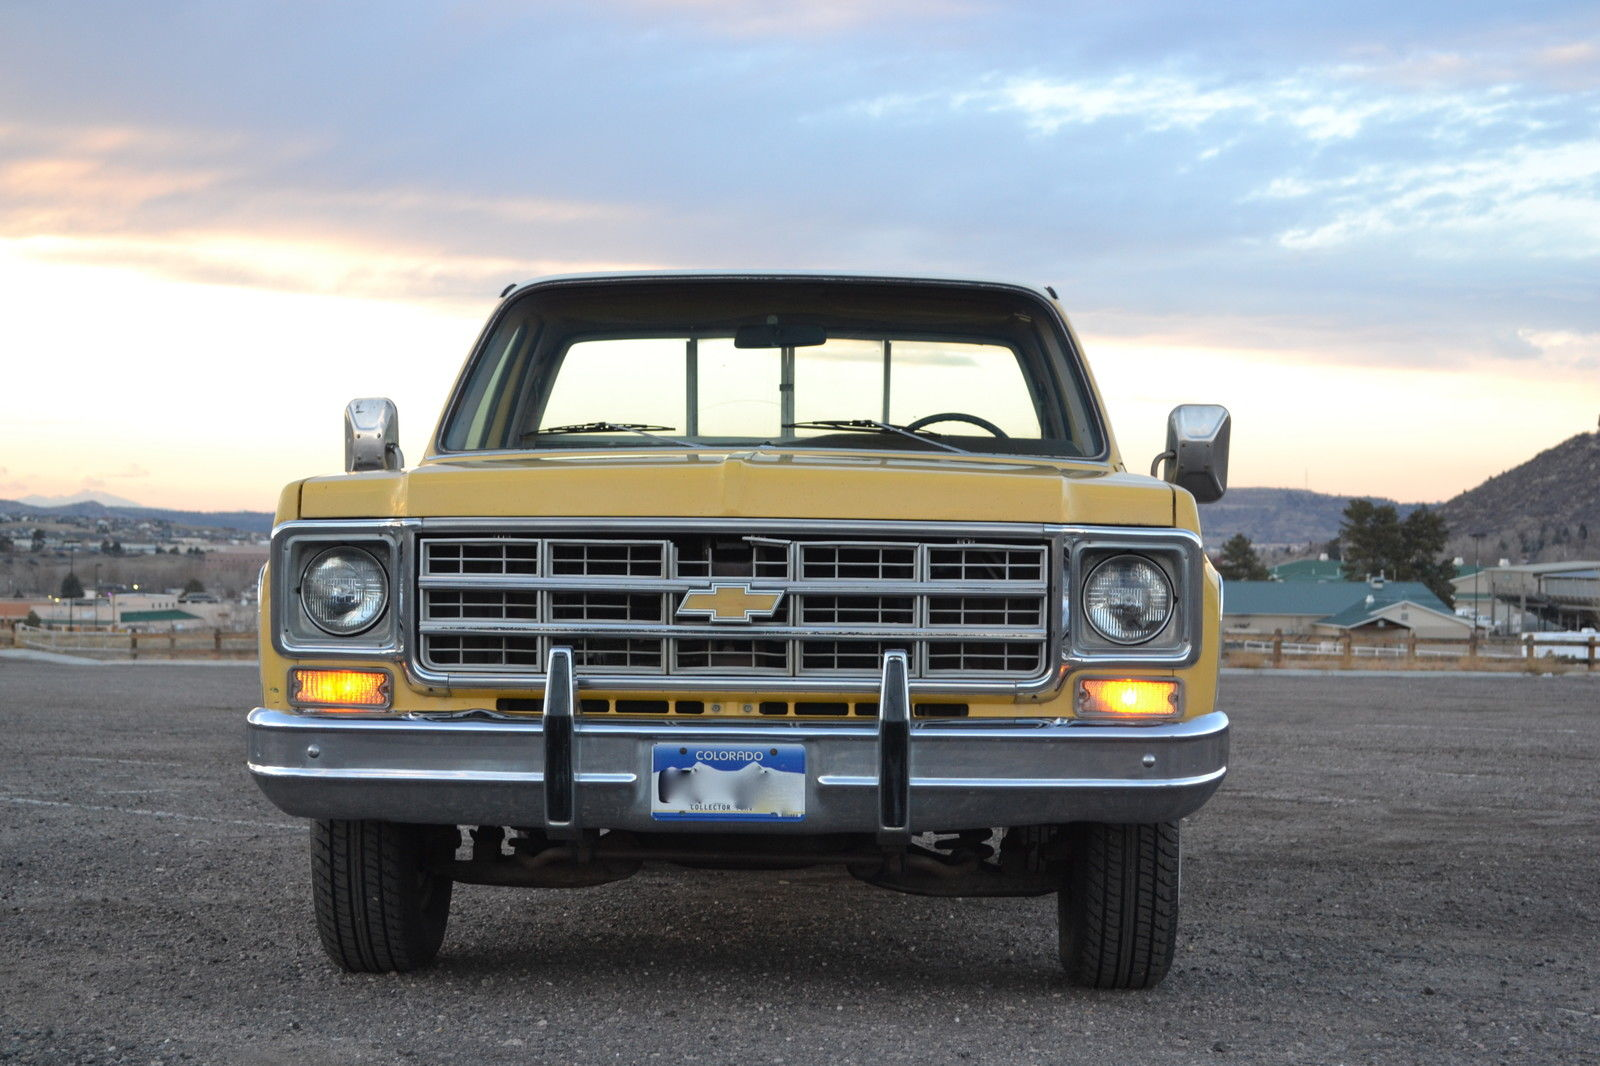 1978 chevrolet silverado c10 classic yellow shipping beige seller cars private air